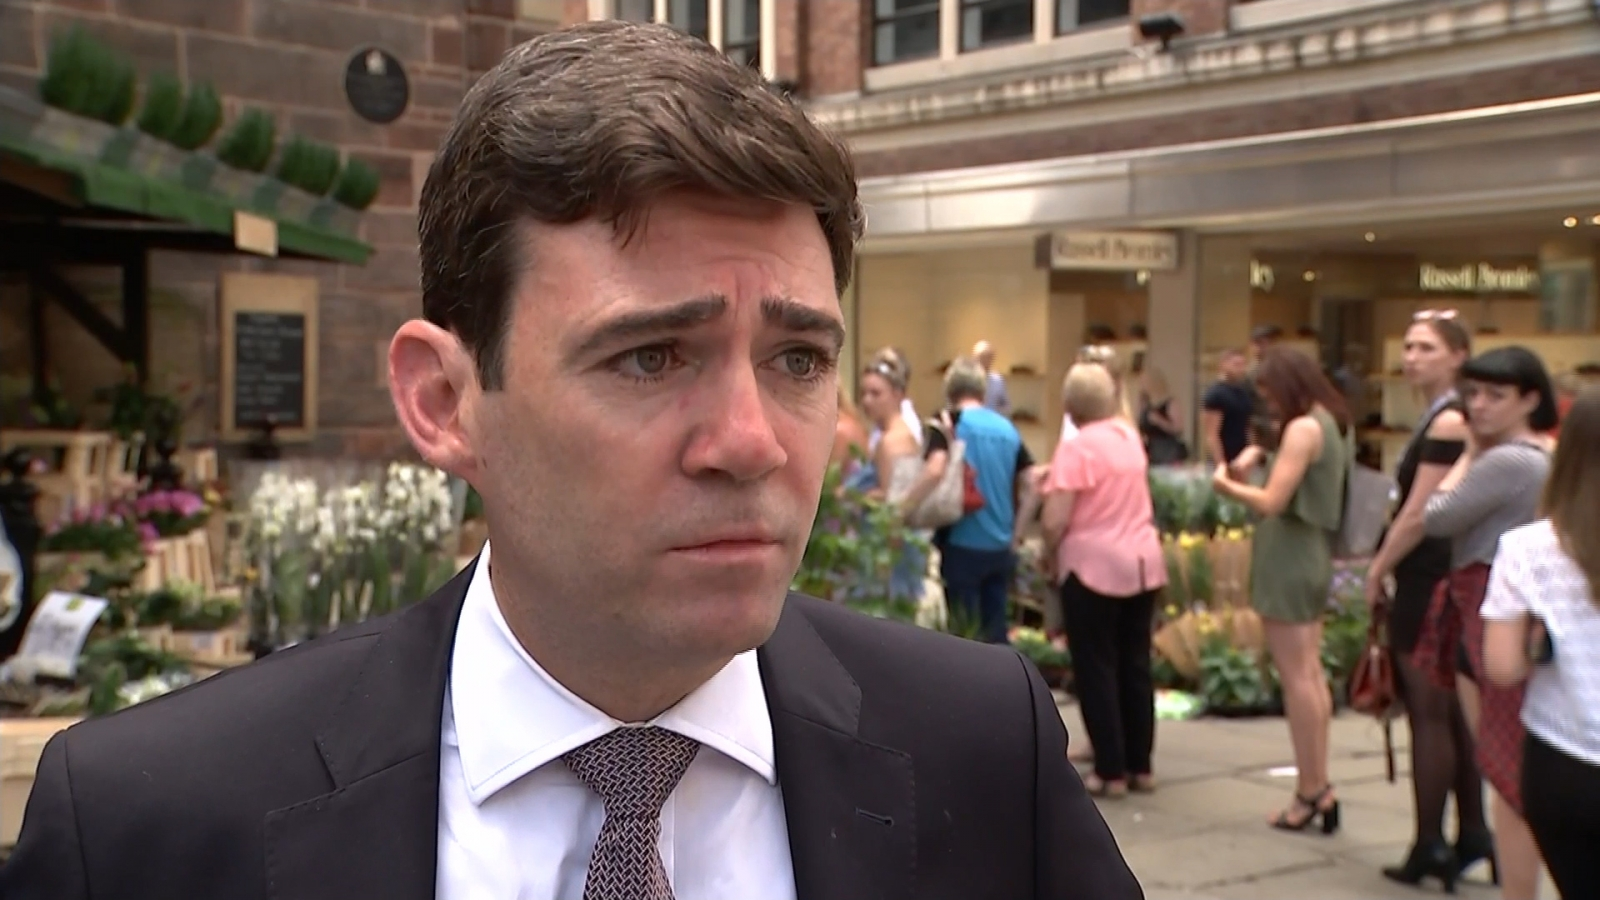 https://d.ibtimes.co.uk/en/full/1615514/mayor-andy-burnham-praises-inspirational-people-manchester-after-attack.jpg